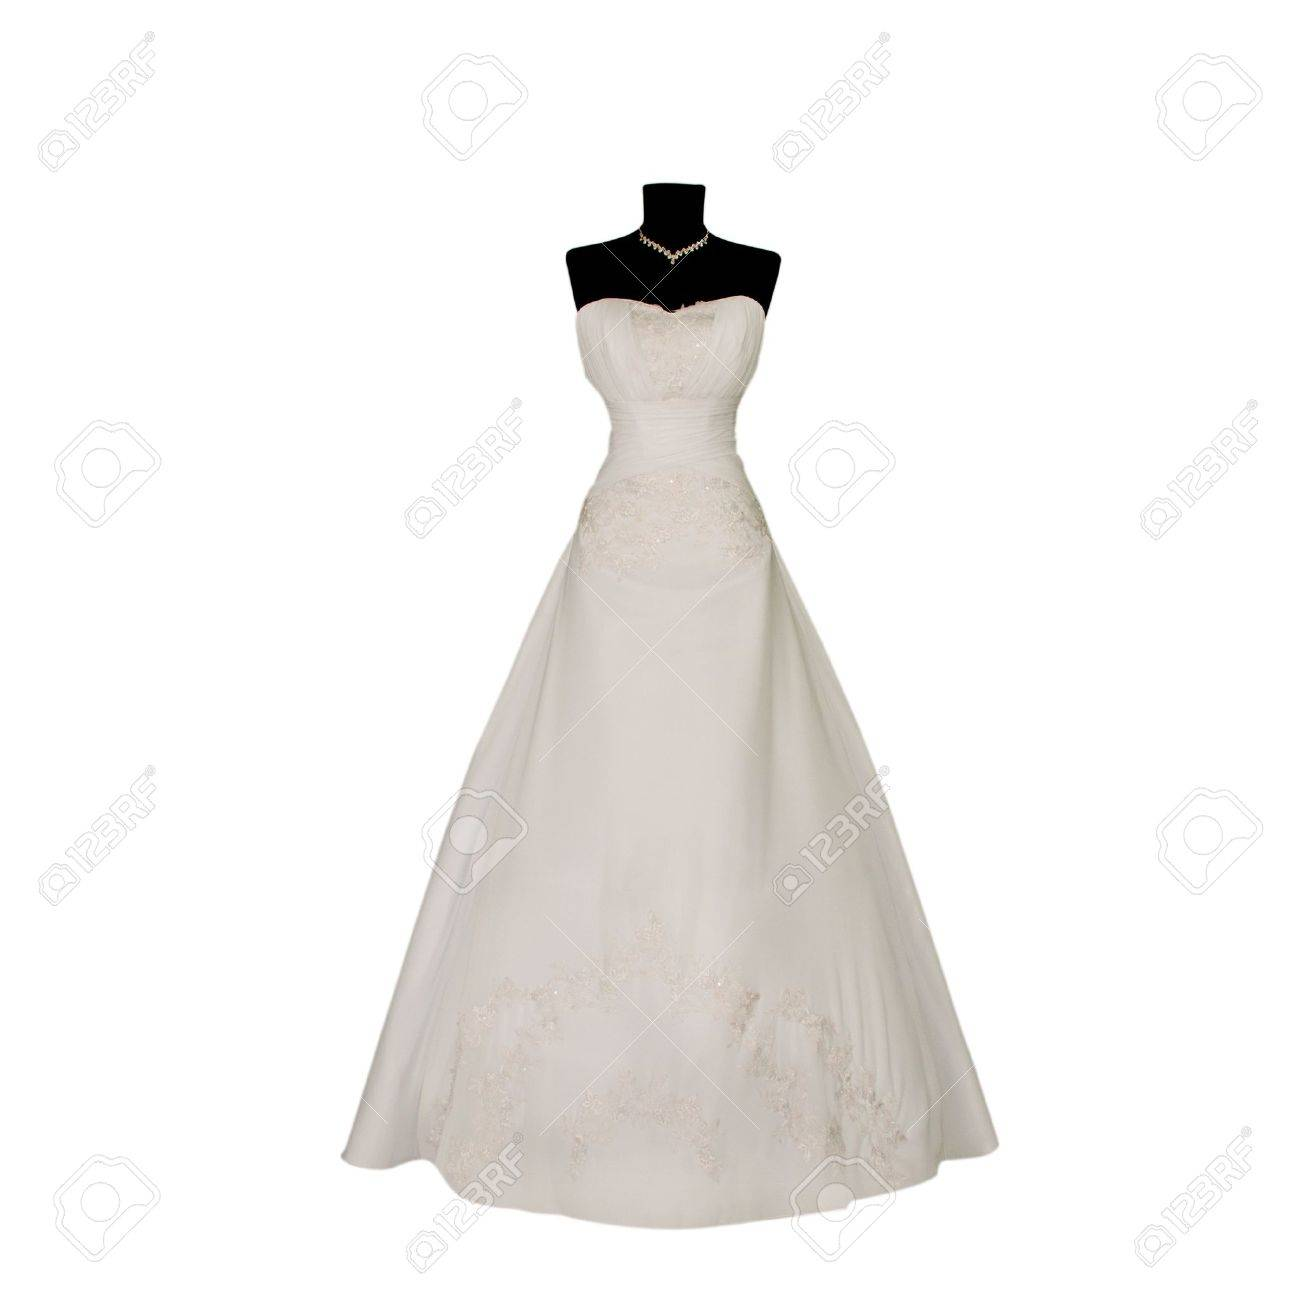 Wedding dress on mannequin isolated on white Stock Photo - 13404138